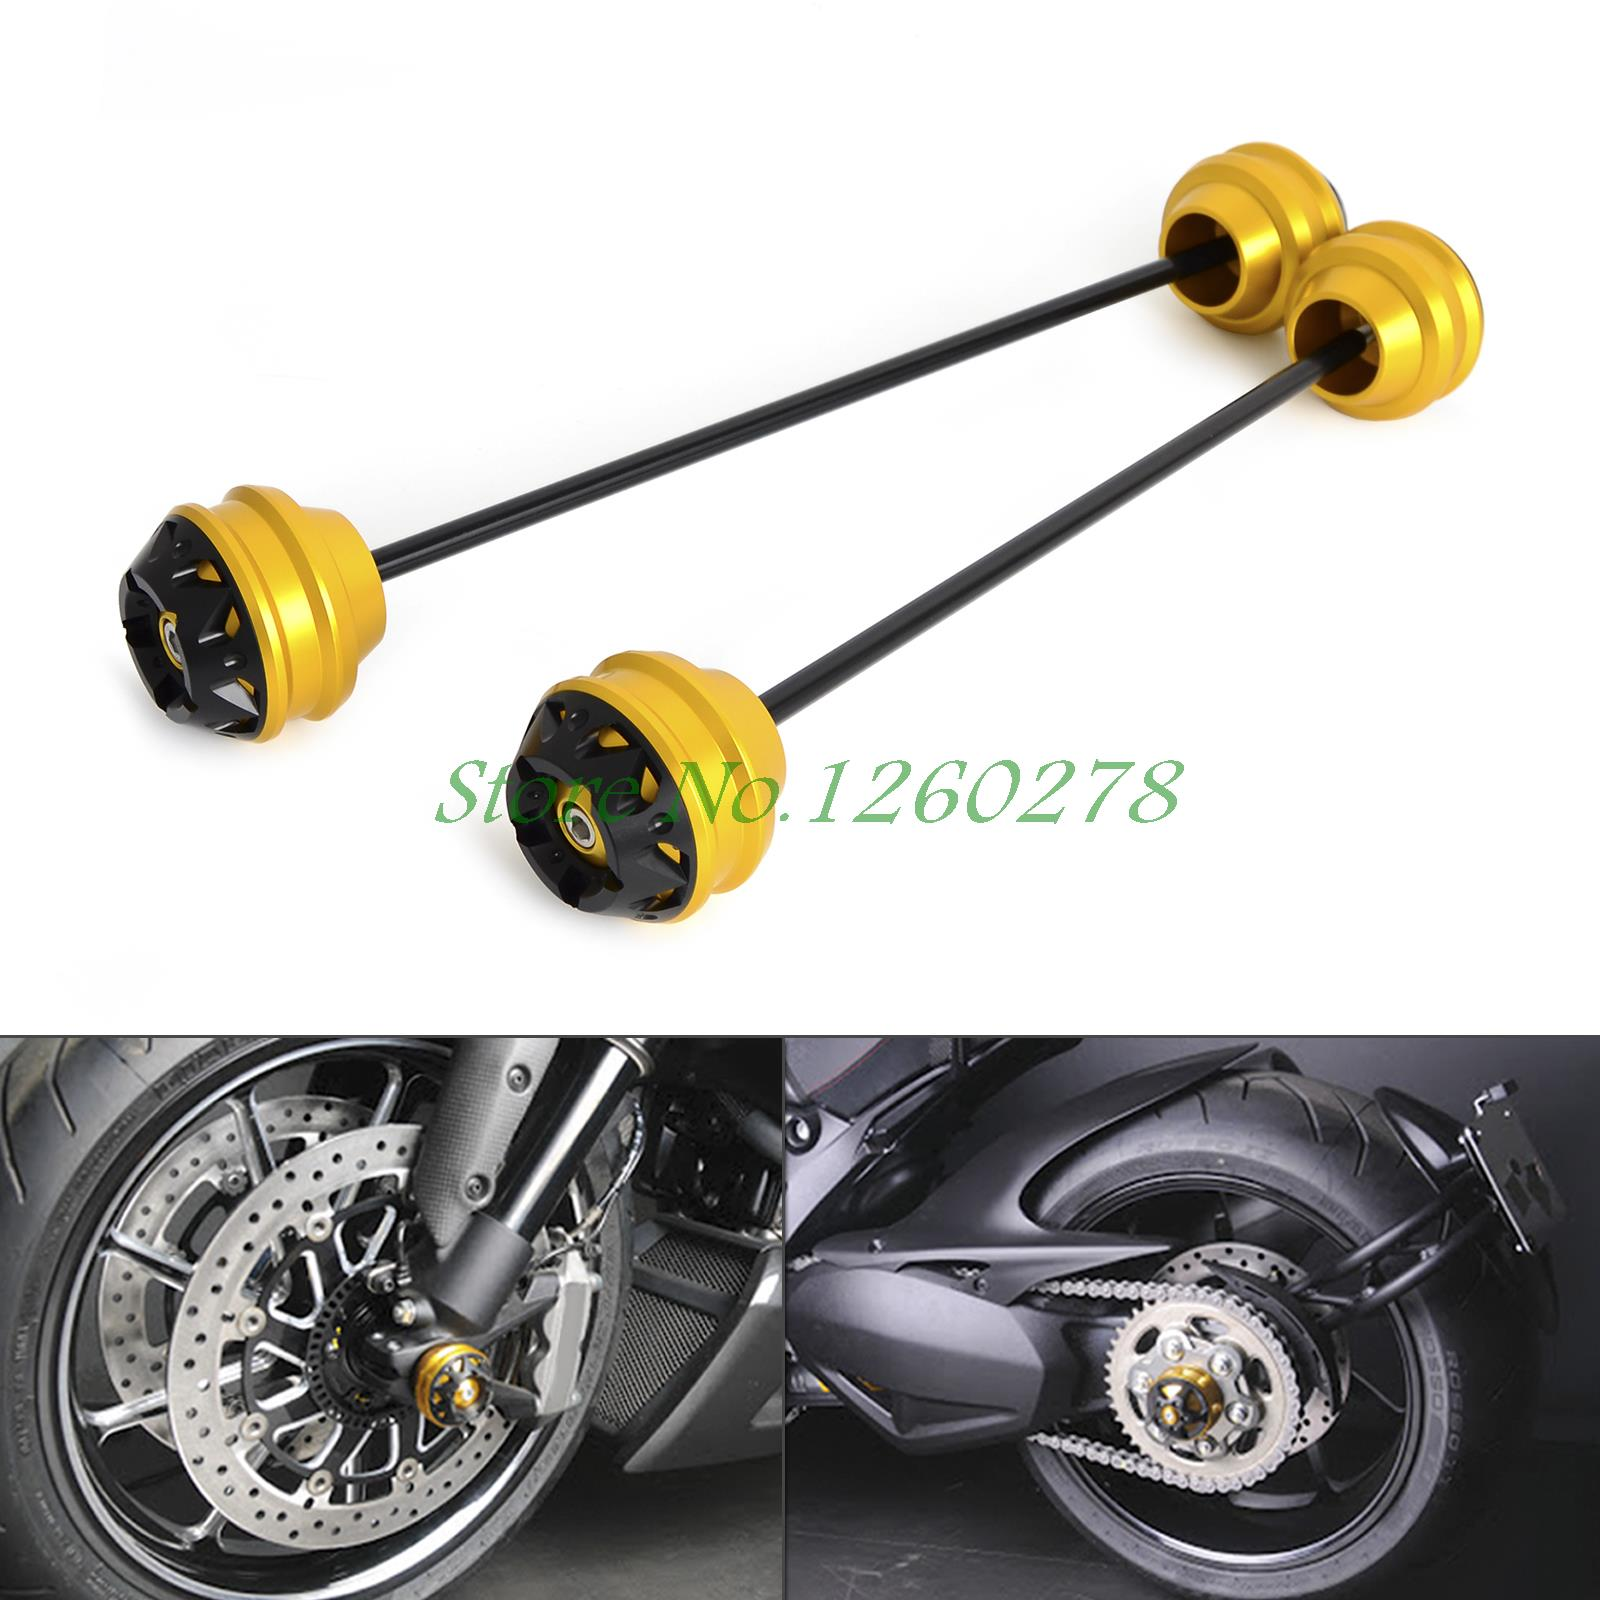 Front & Rear Axle Sliders/ Swingarm Sliders for DUCATI Panigale 1199 2013-2015 Diavel 2011-2016 Superbike 1299 Panigale S 2015